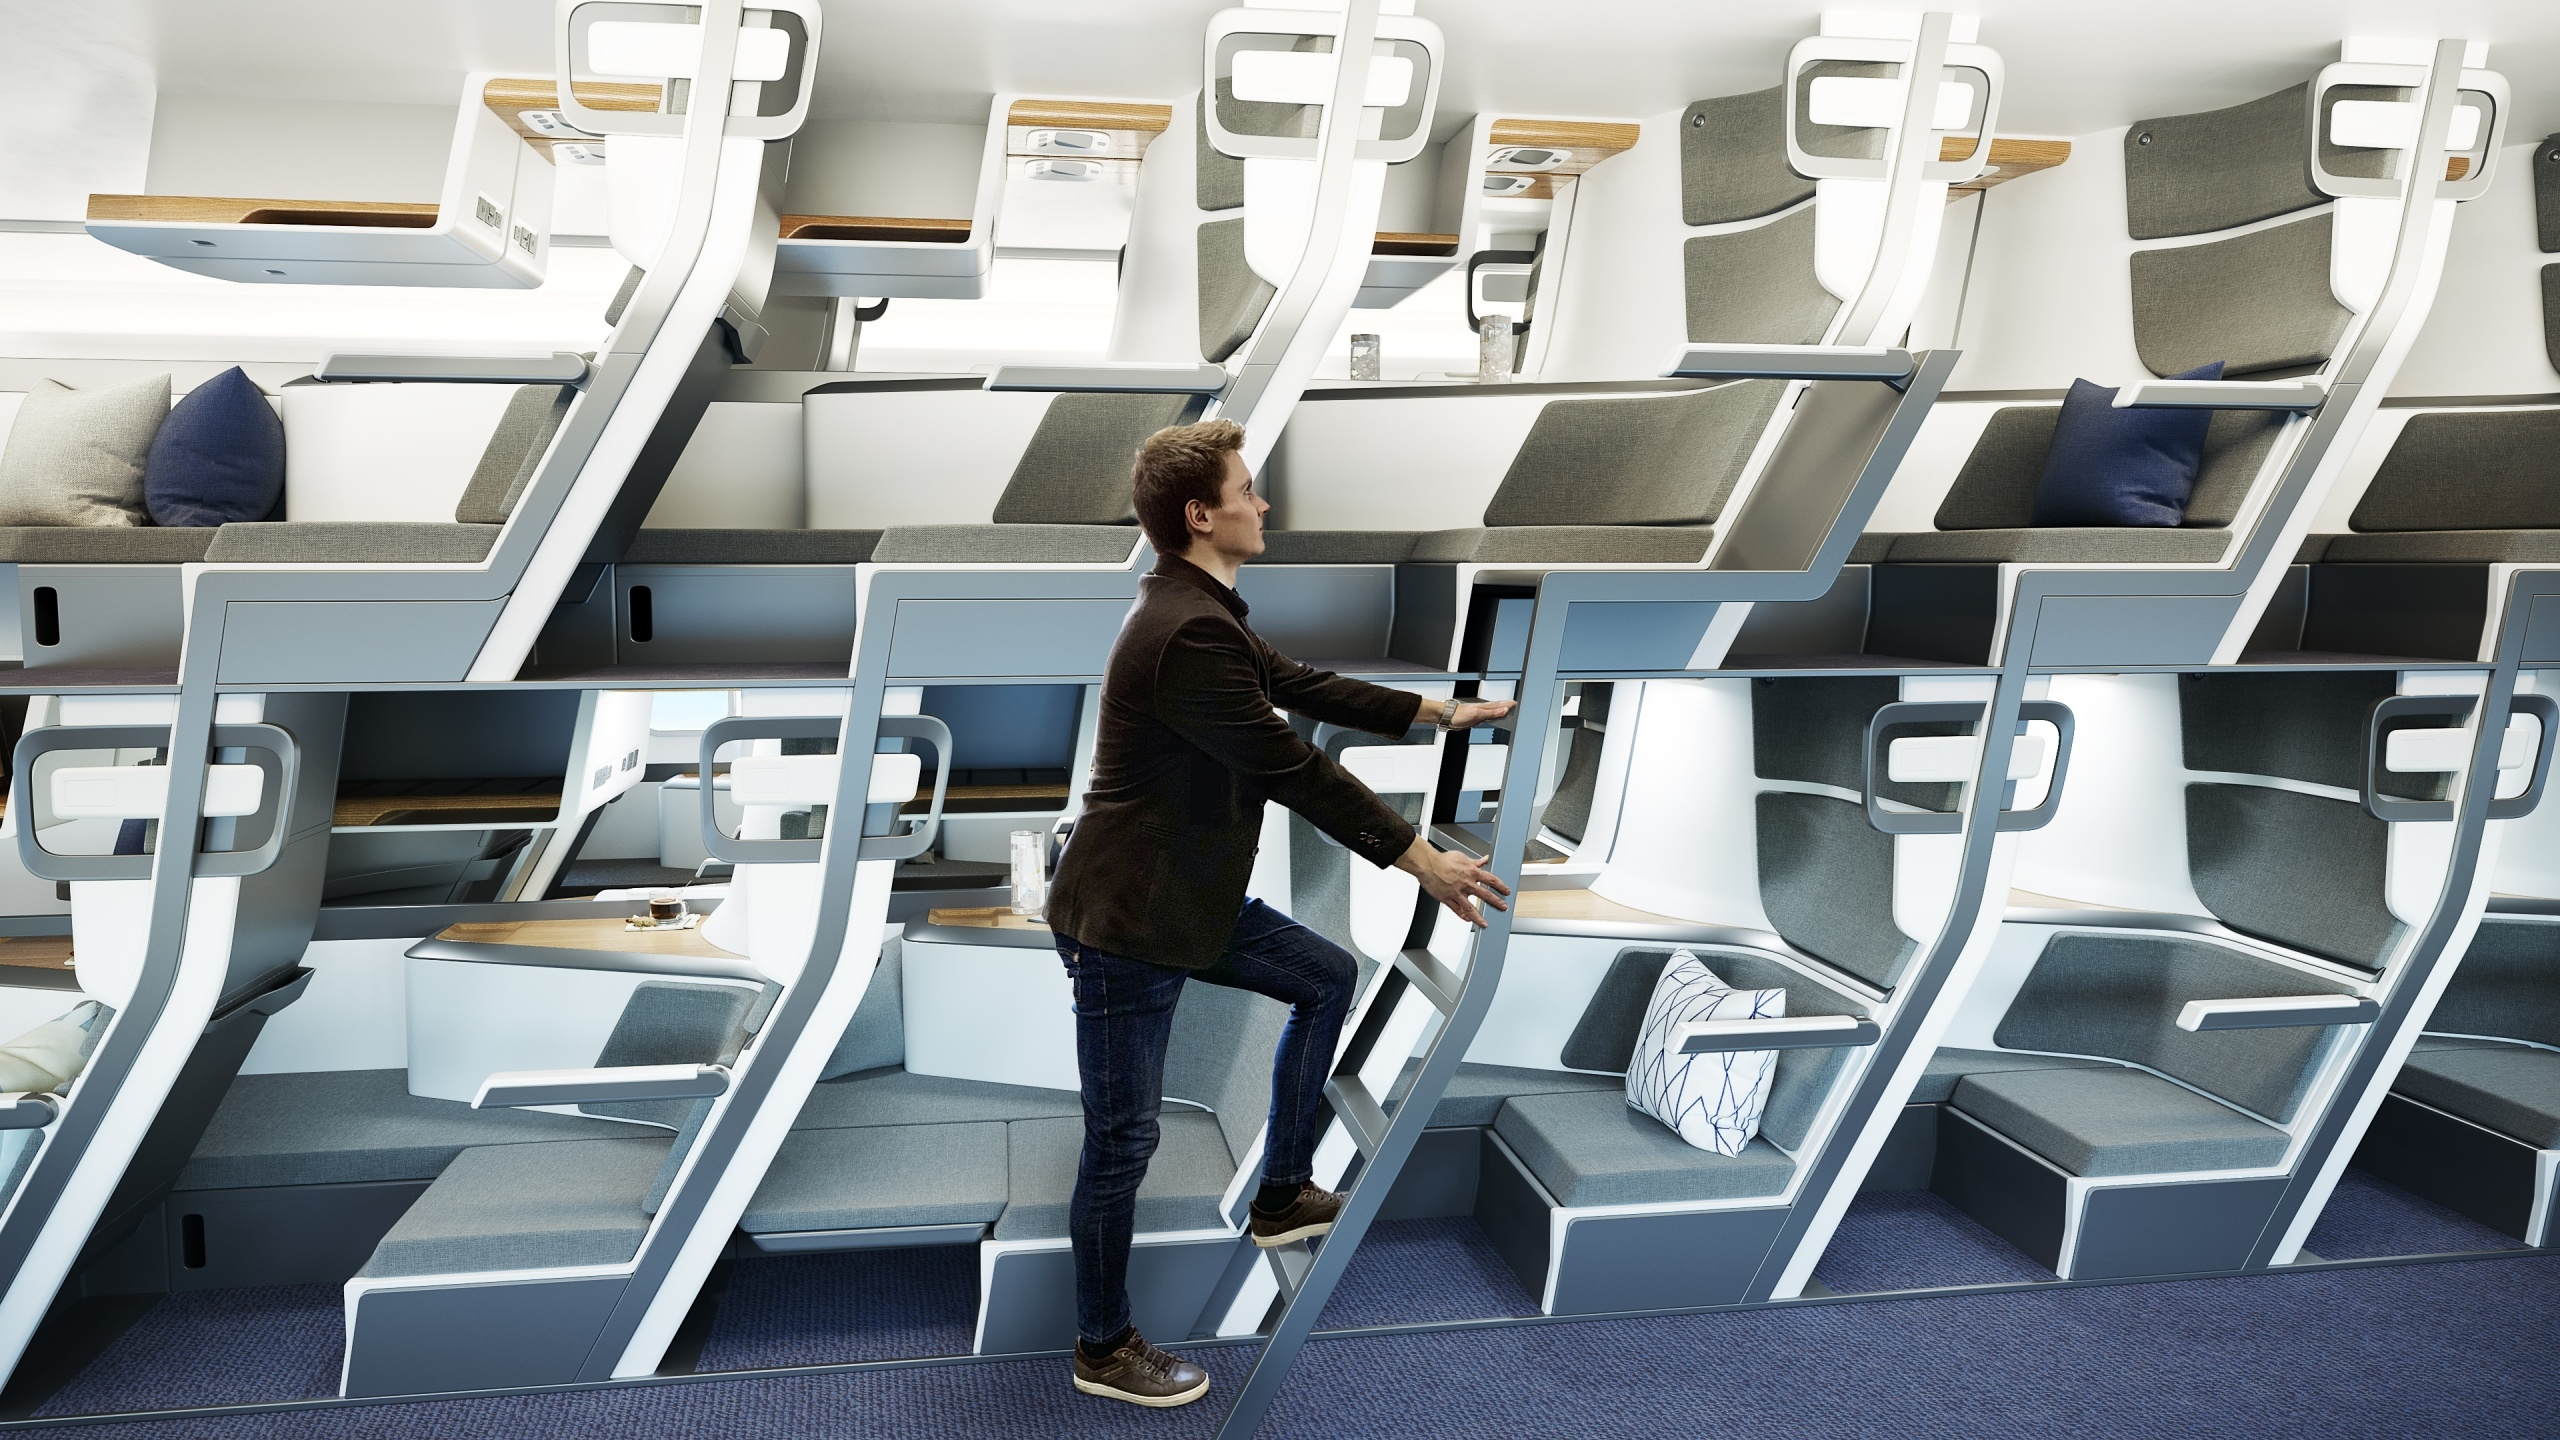 3D Rendering for Innovative Airplane Seats